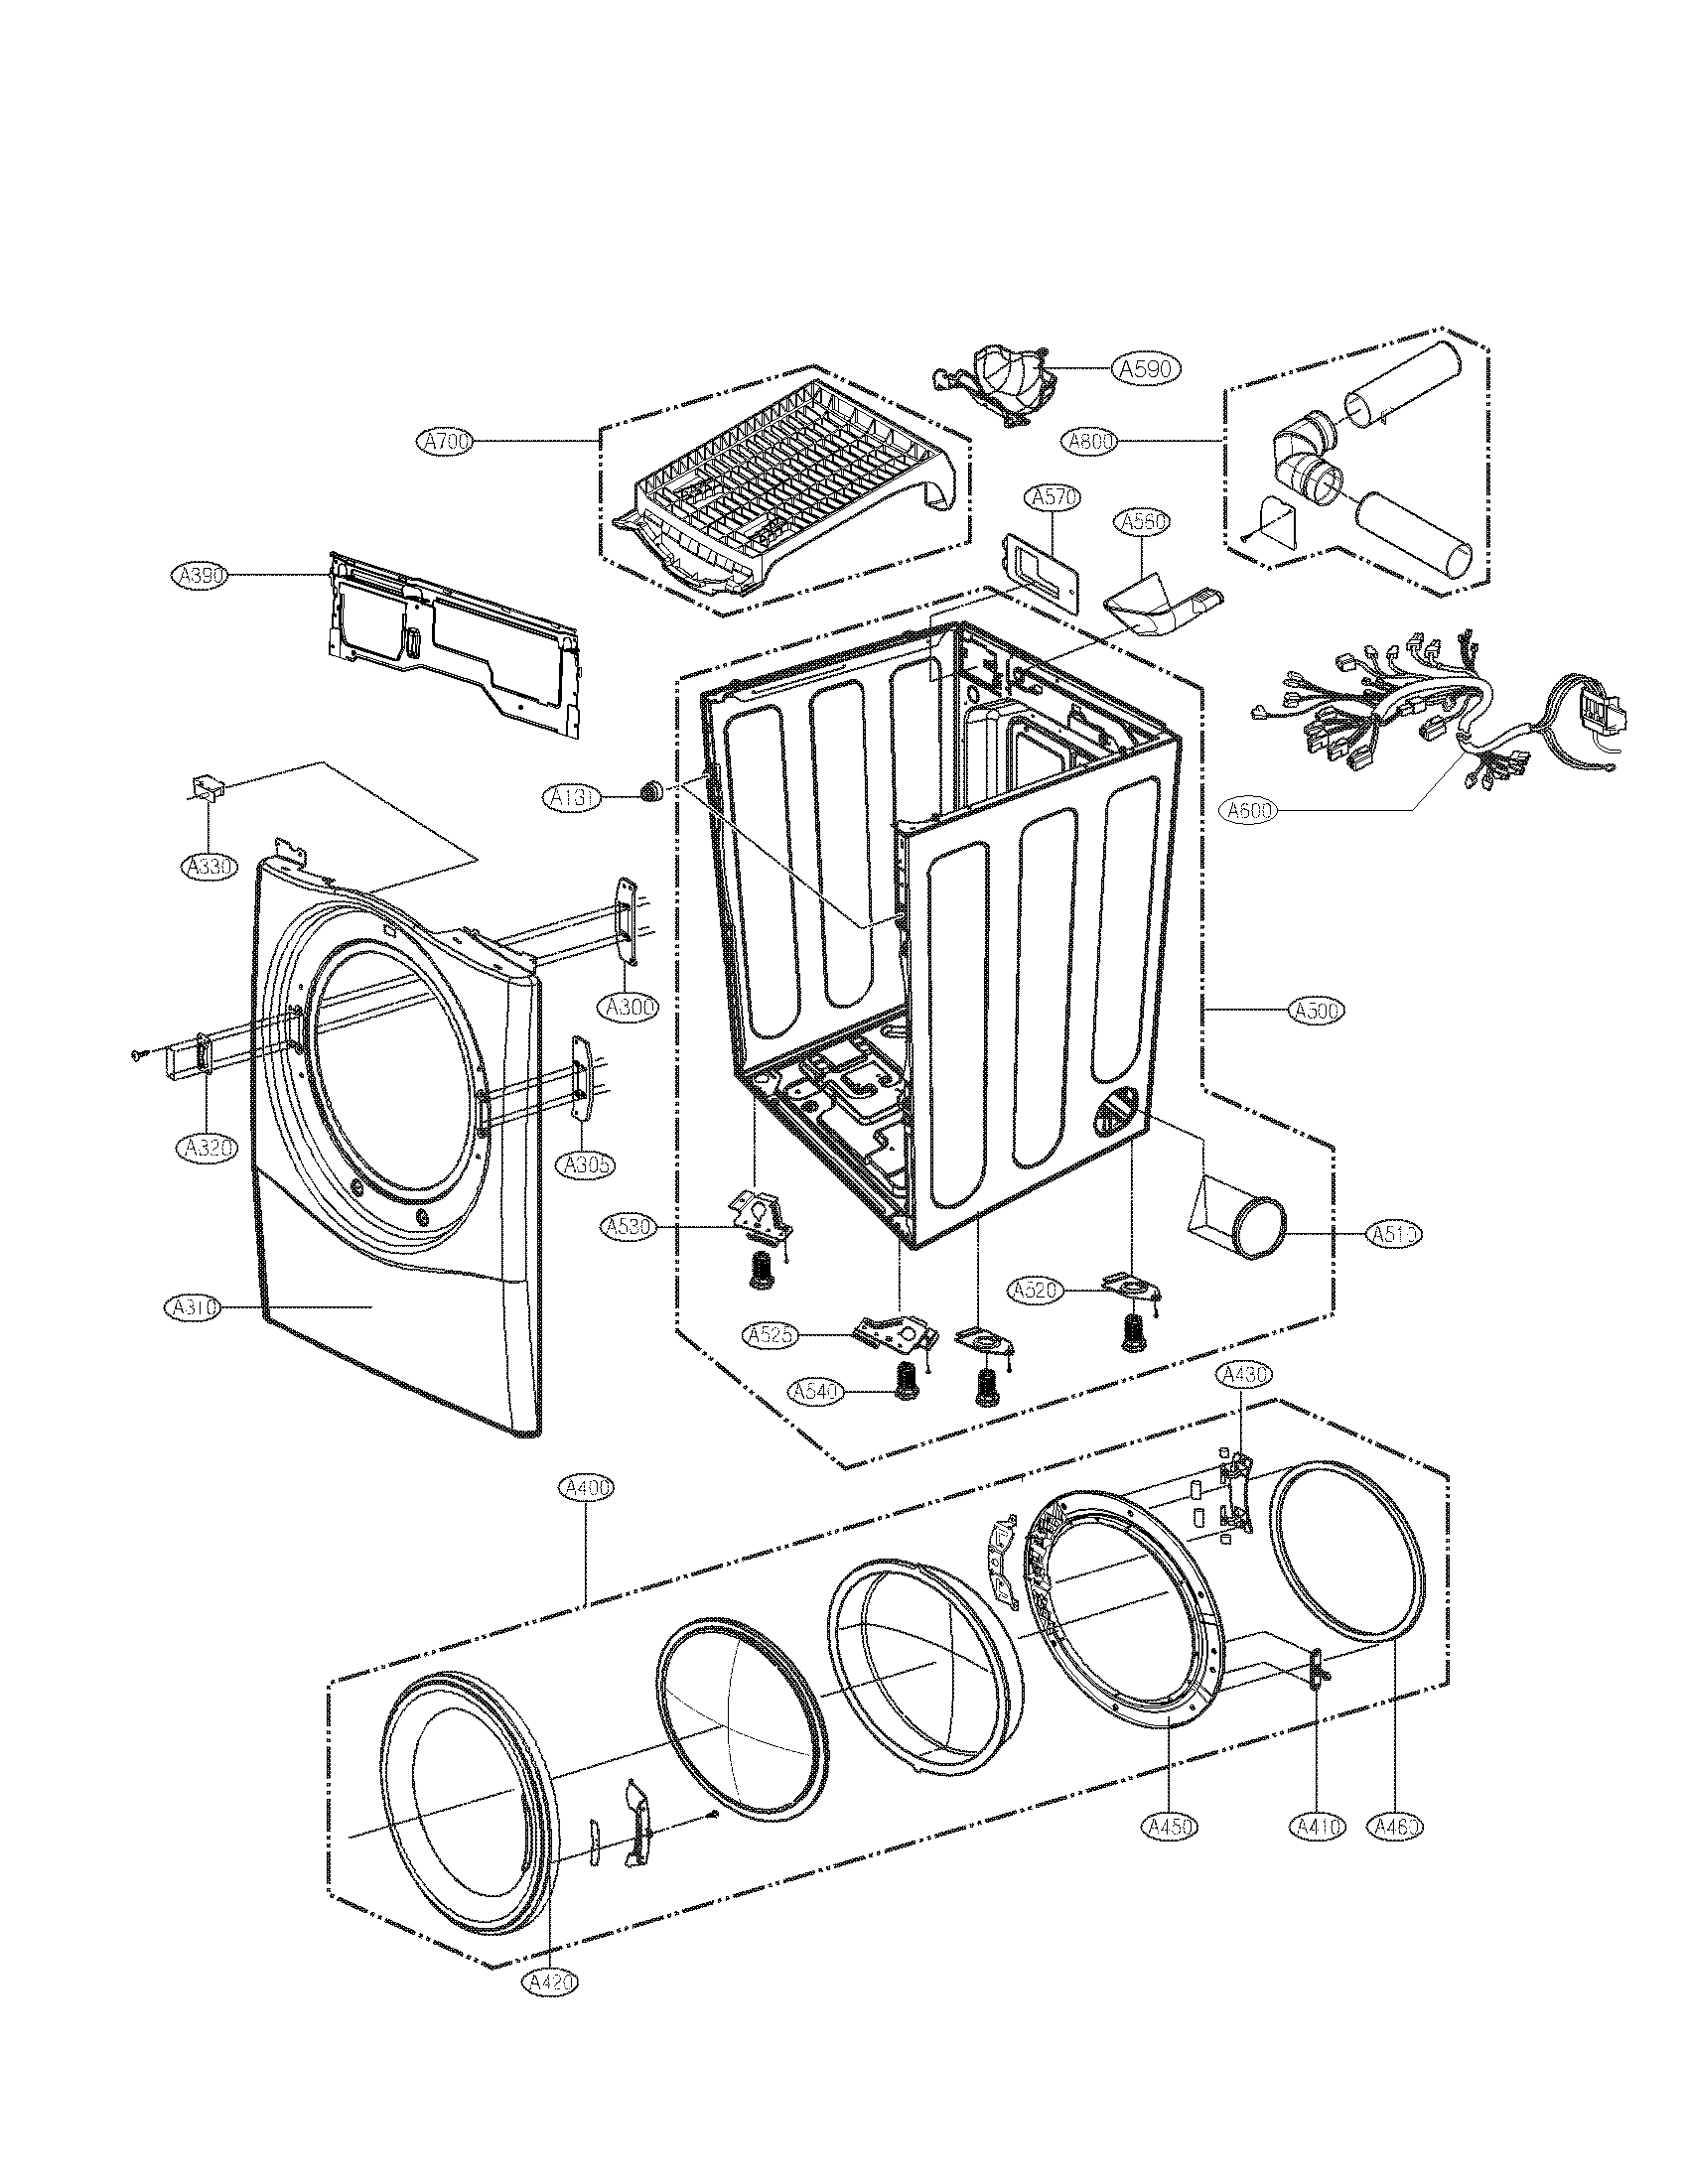 Lg model DLEX2501V residential dryer genuine parts